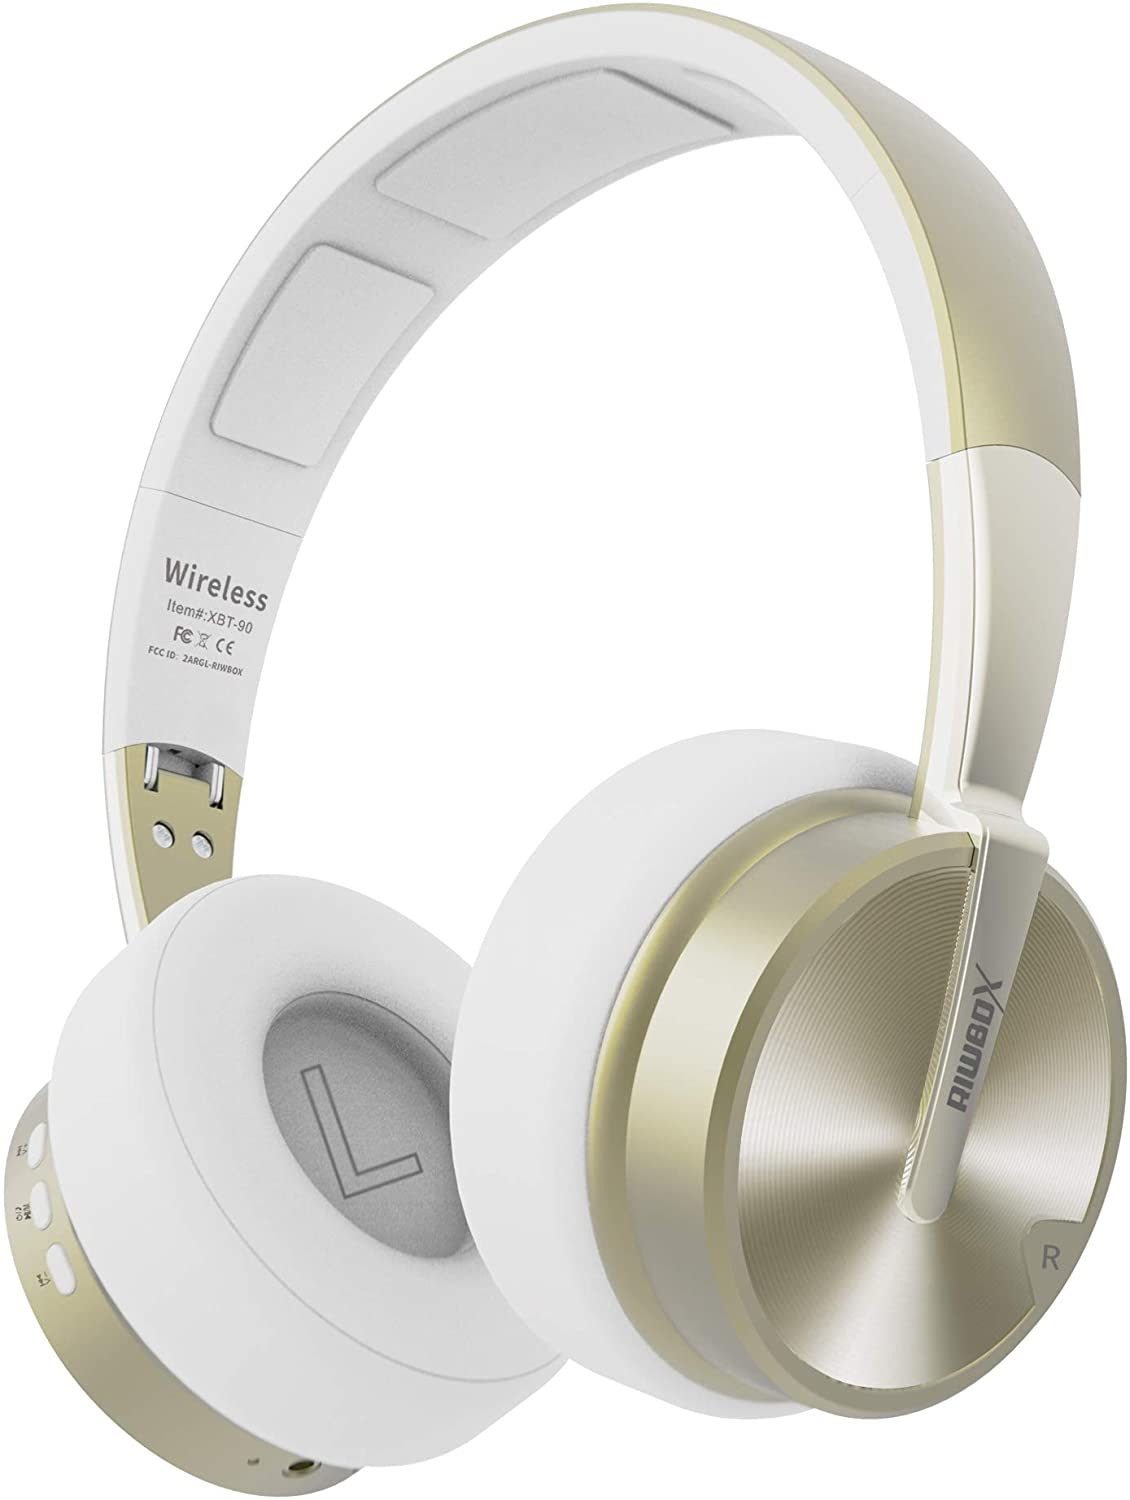 Bluetooth Headphones, Riwbox XBT-90 Foldable Wireless Bluetooth Headphones Over Ear Hi-Fi Stereo Wireless Headset with Mic/TF Card and Volume Control Compatible for PC/Cell Phones/TV/ipad (White&Gold)